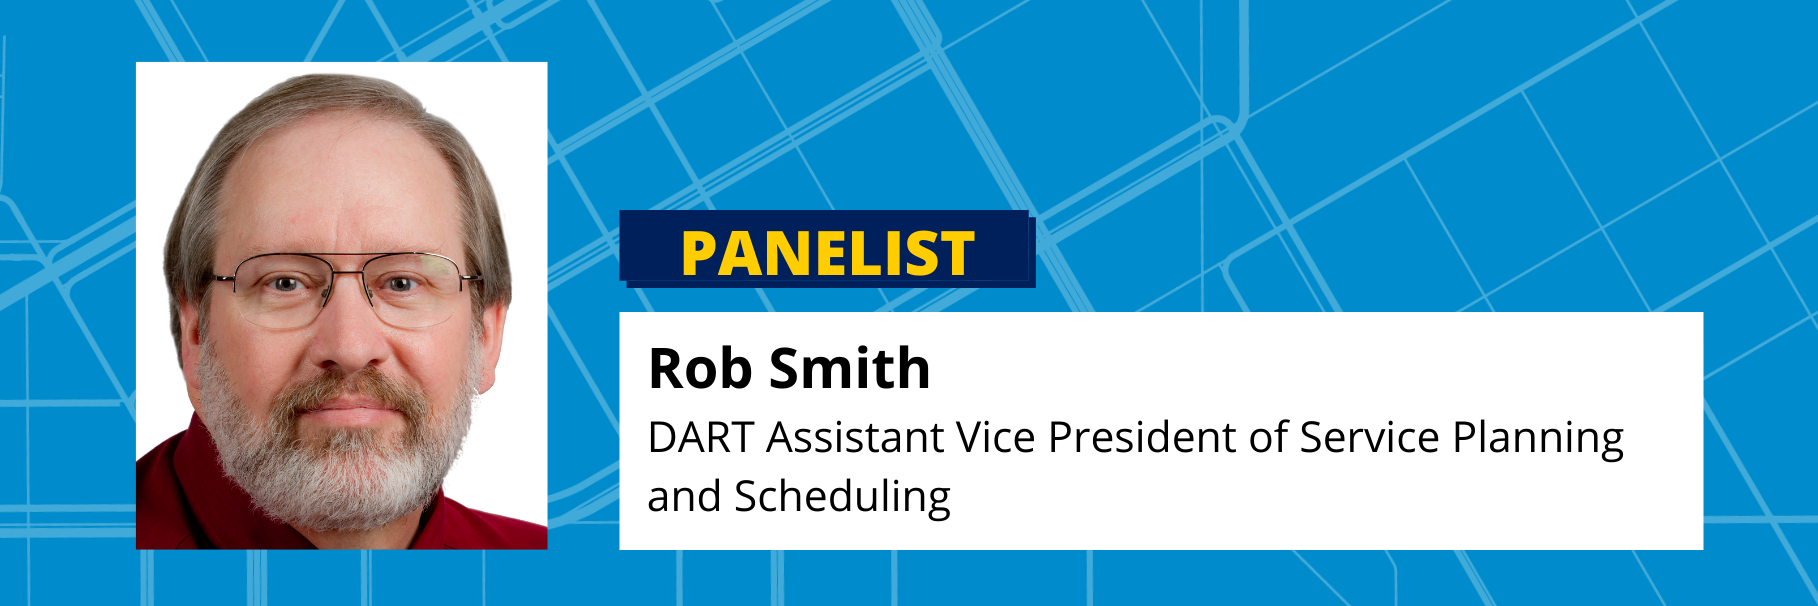 Rob Smith DART Assistant Vice President of Service Planning and Scheduling